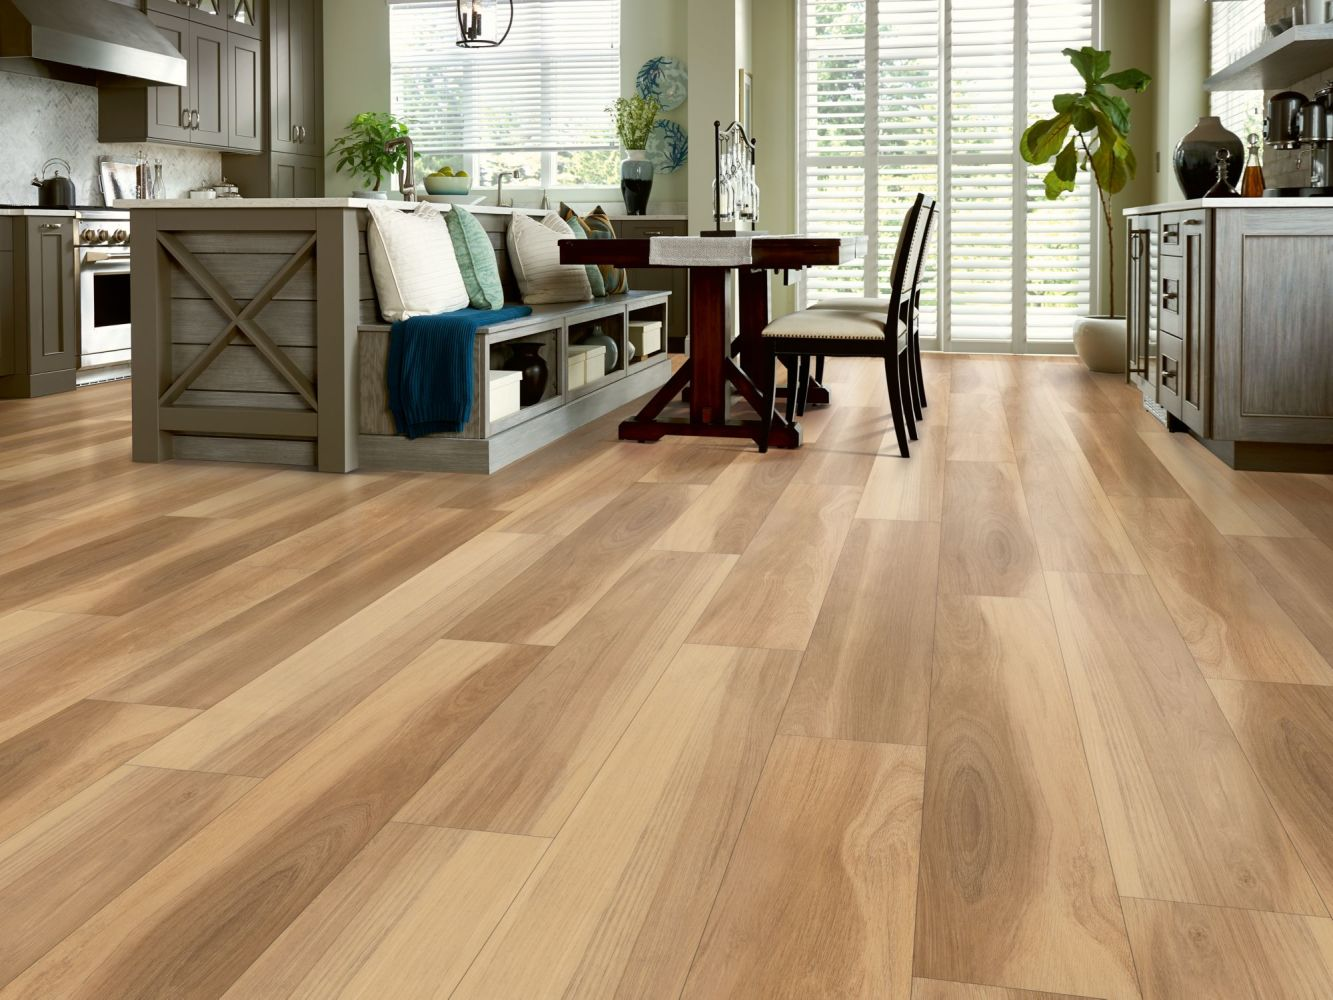 Shaw Floors Resilient Property Solutions Barrel Oak 720c Plus Khaki Oak 00699_515RG